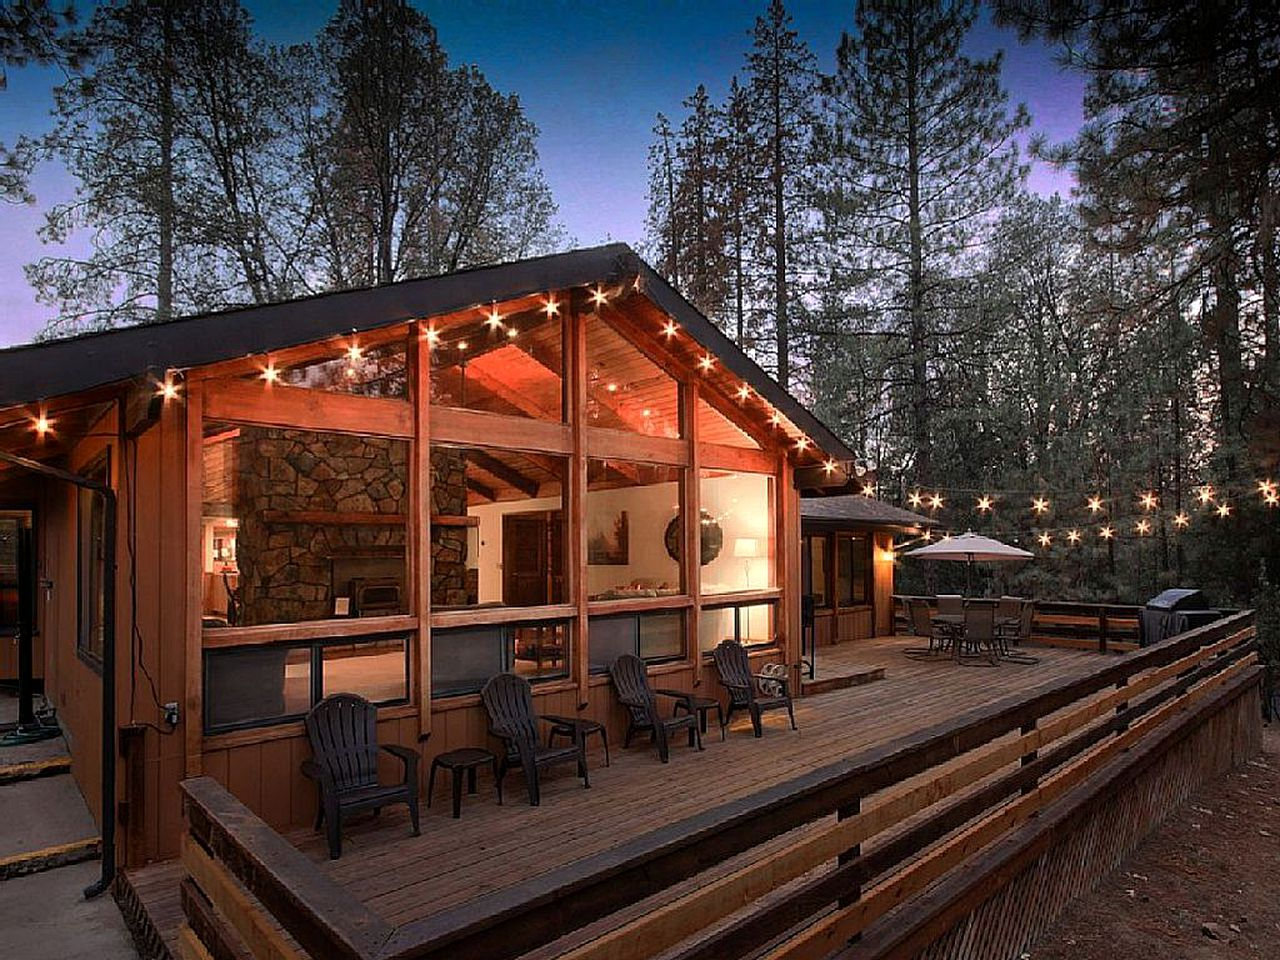 Log Cabins (Mariposa, California, United States)